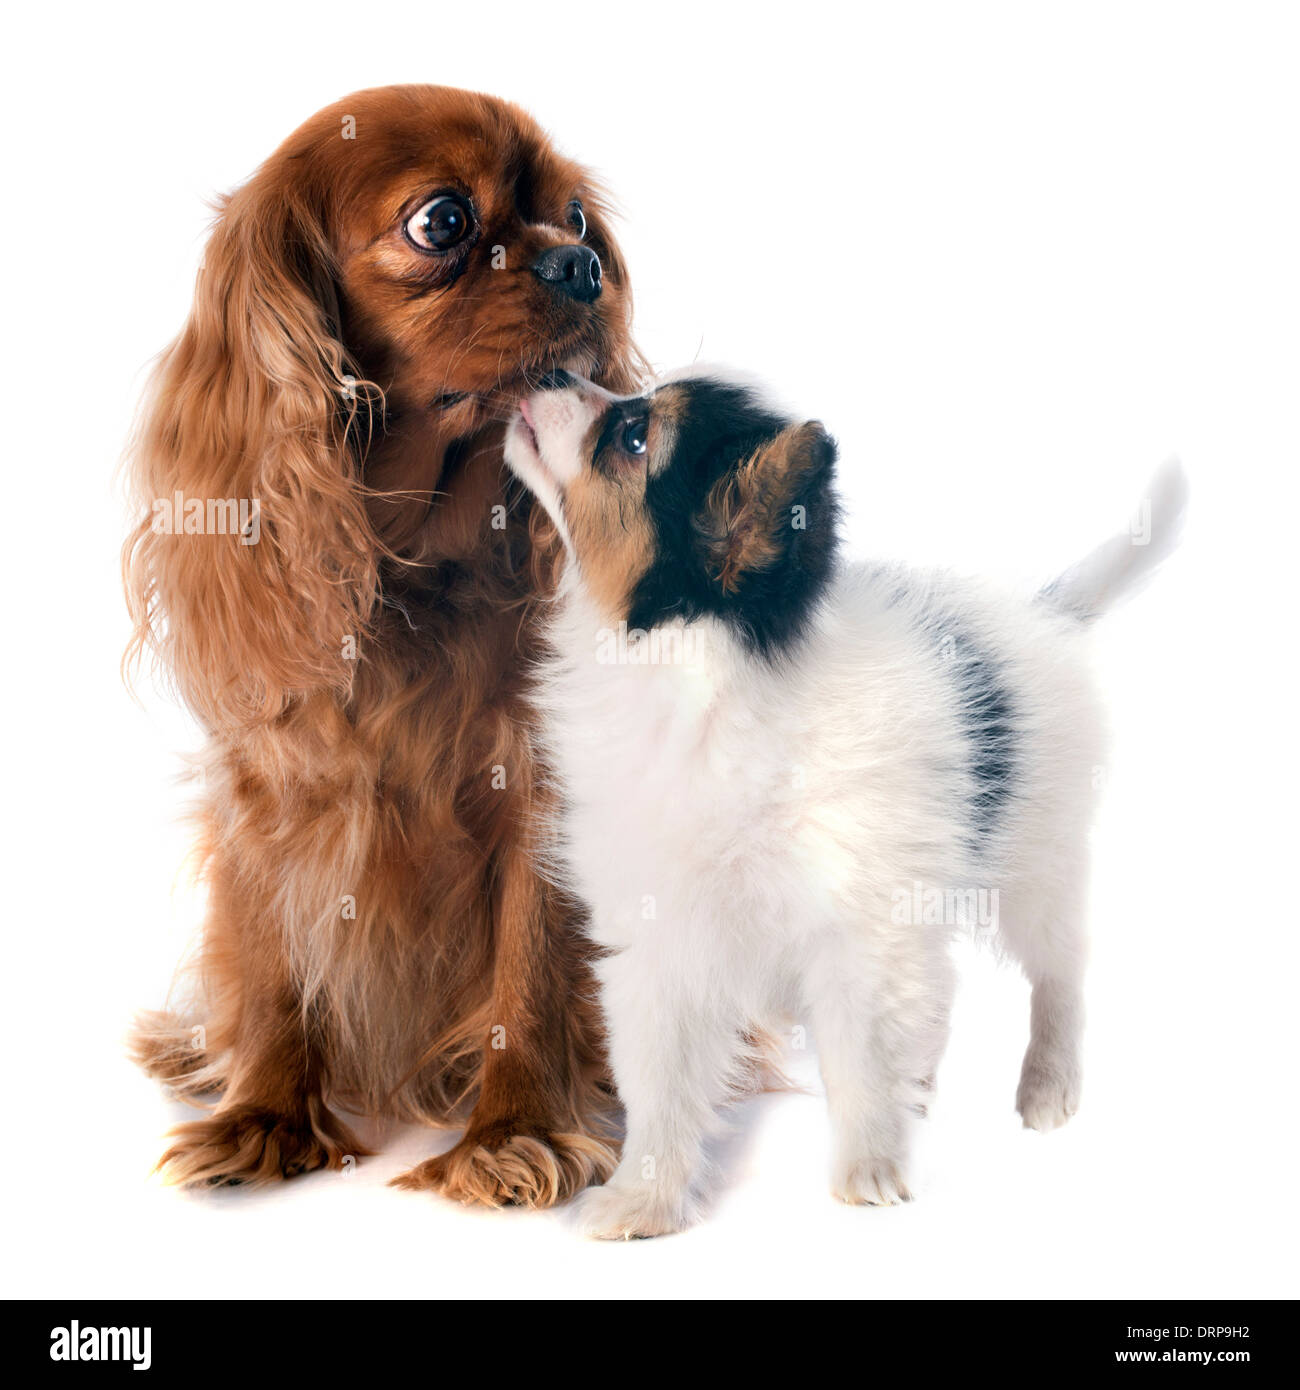 papillon puppy and cavalier king charles in front of white background - Stock Image